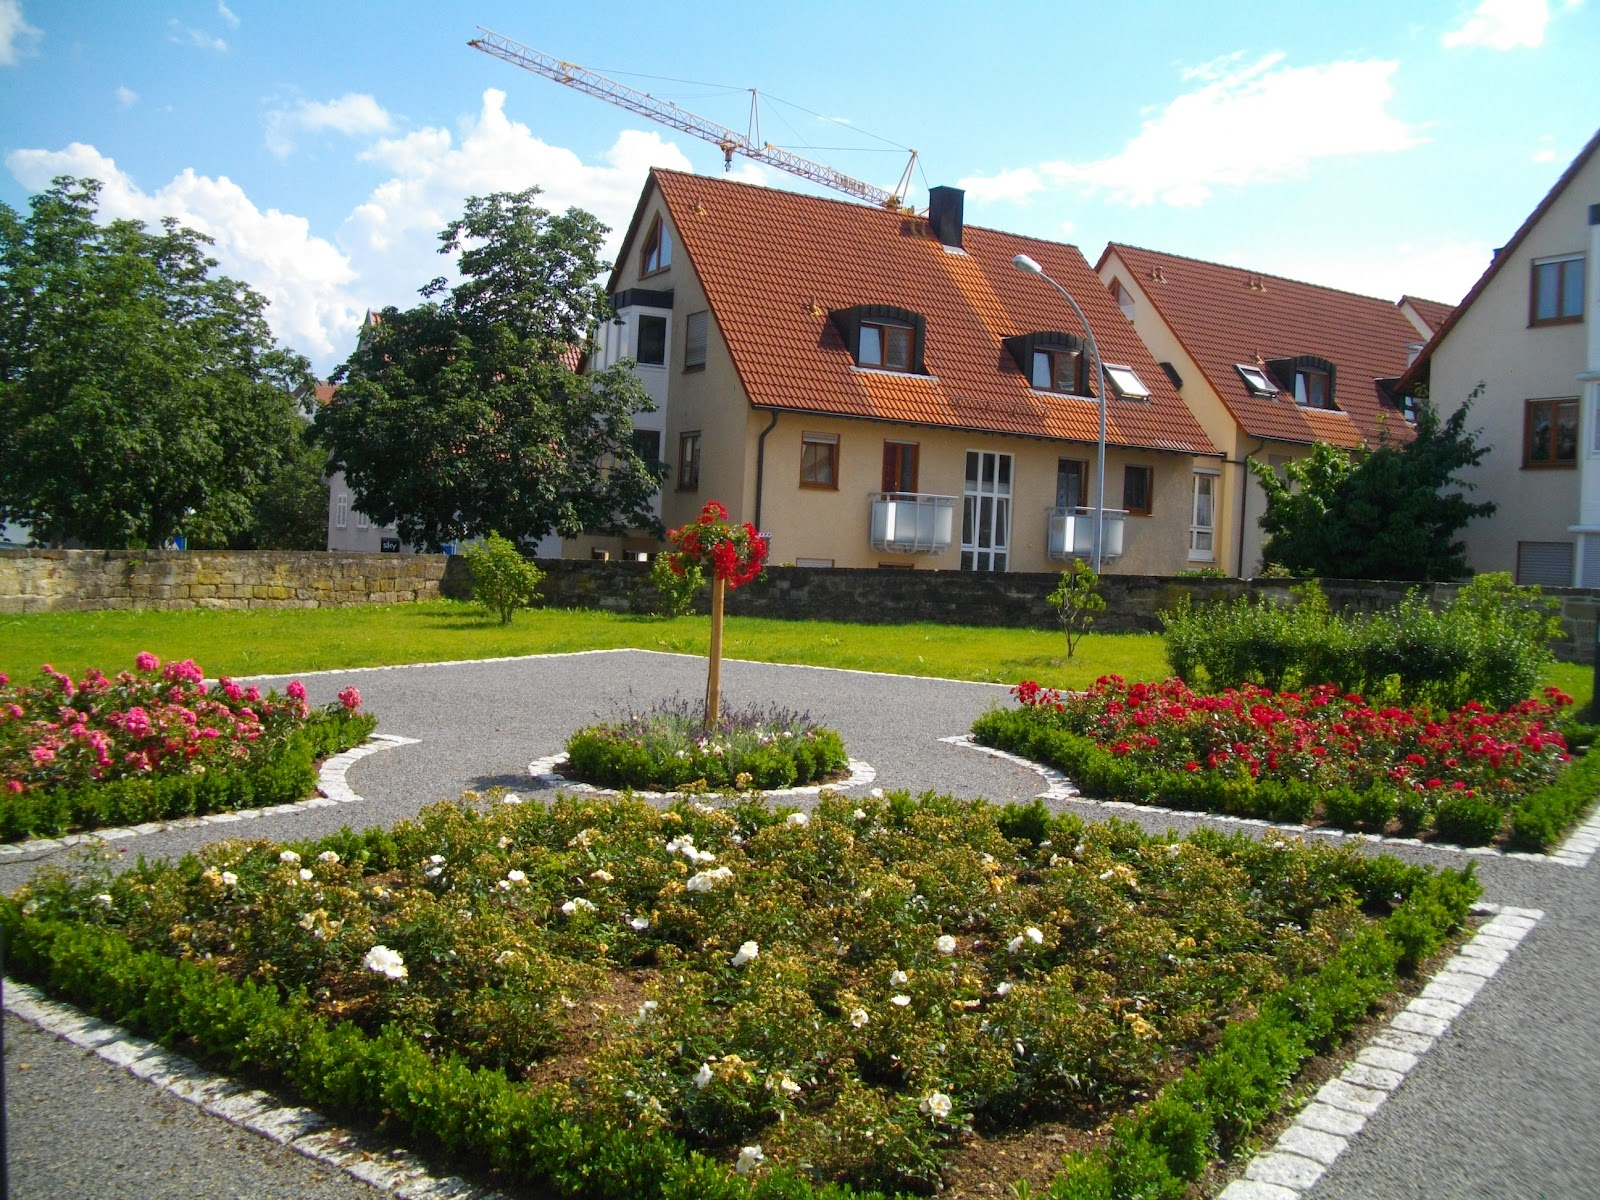 Trends Of Very Very Small Gardens : Trends Of Very Very Small Gardens : very very small baroque garden ...